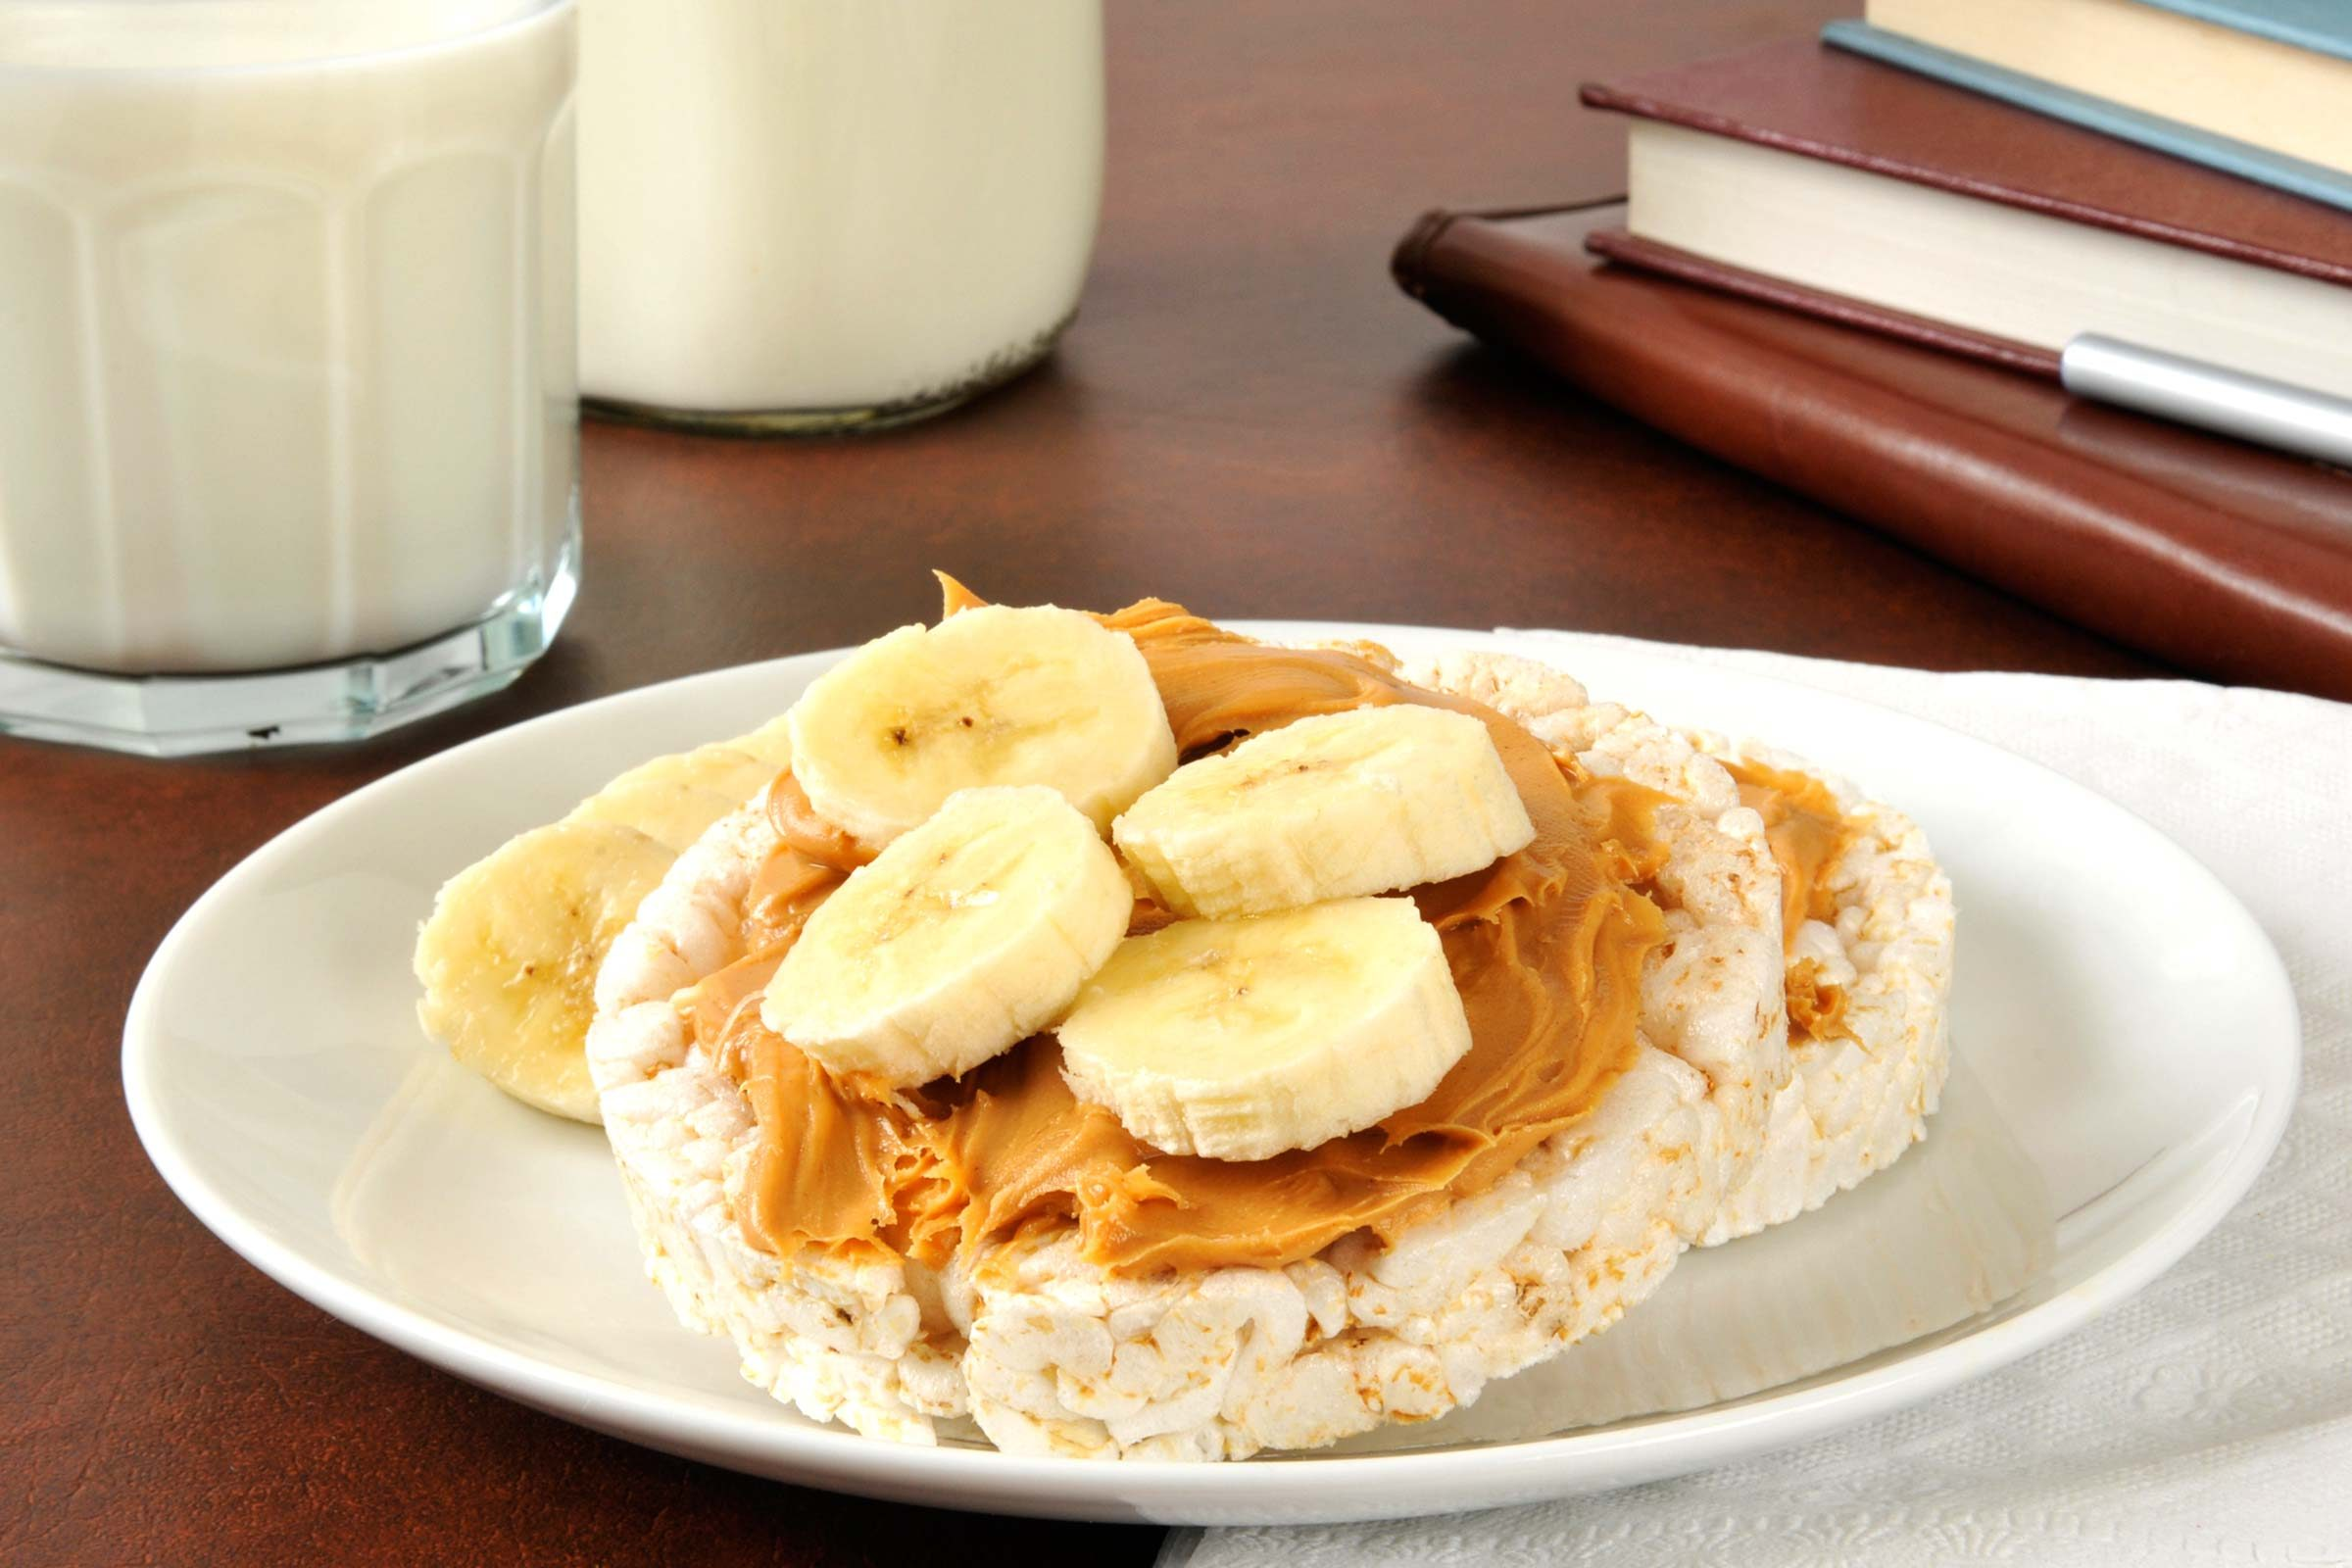 rice-cakes with peanut butter and banana